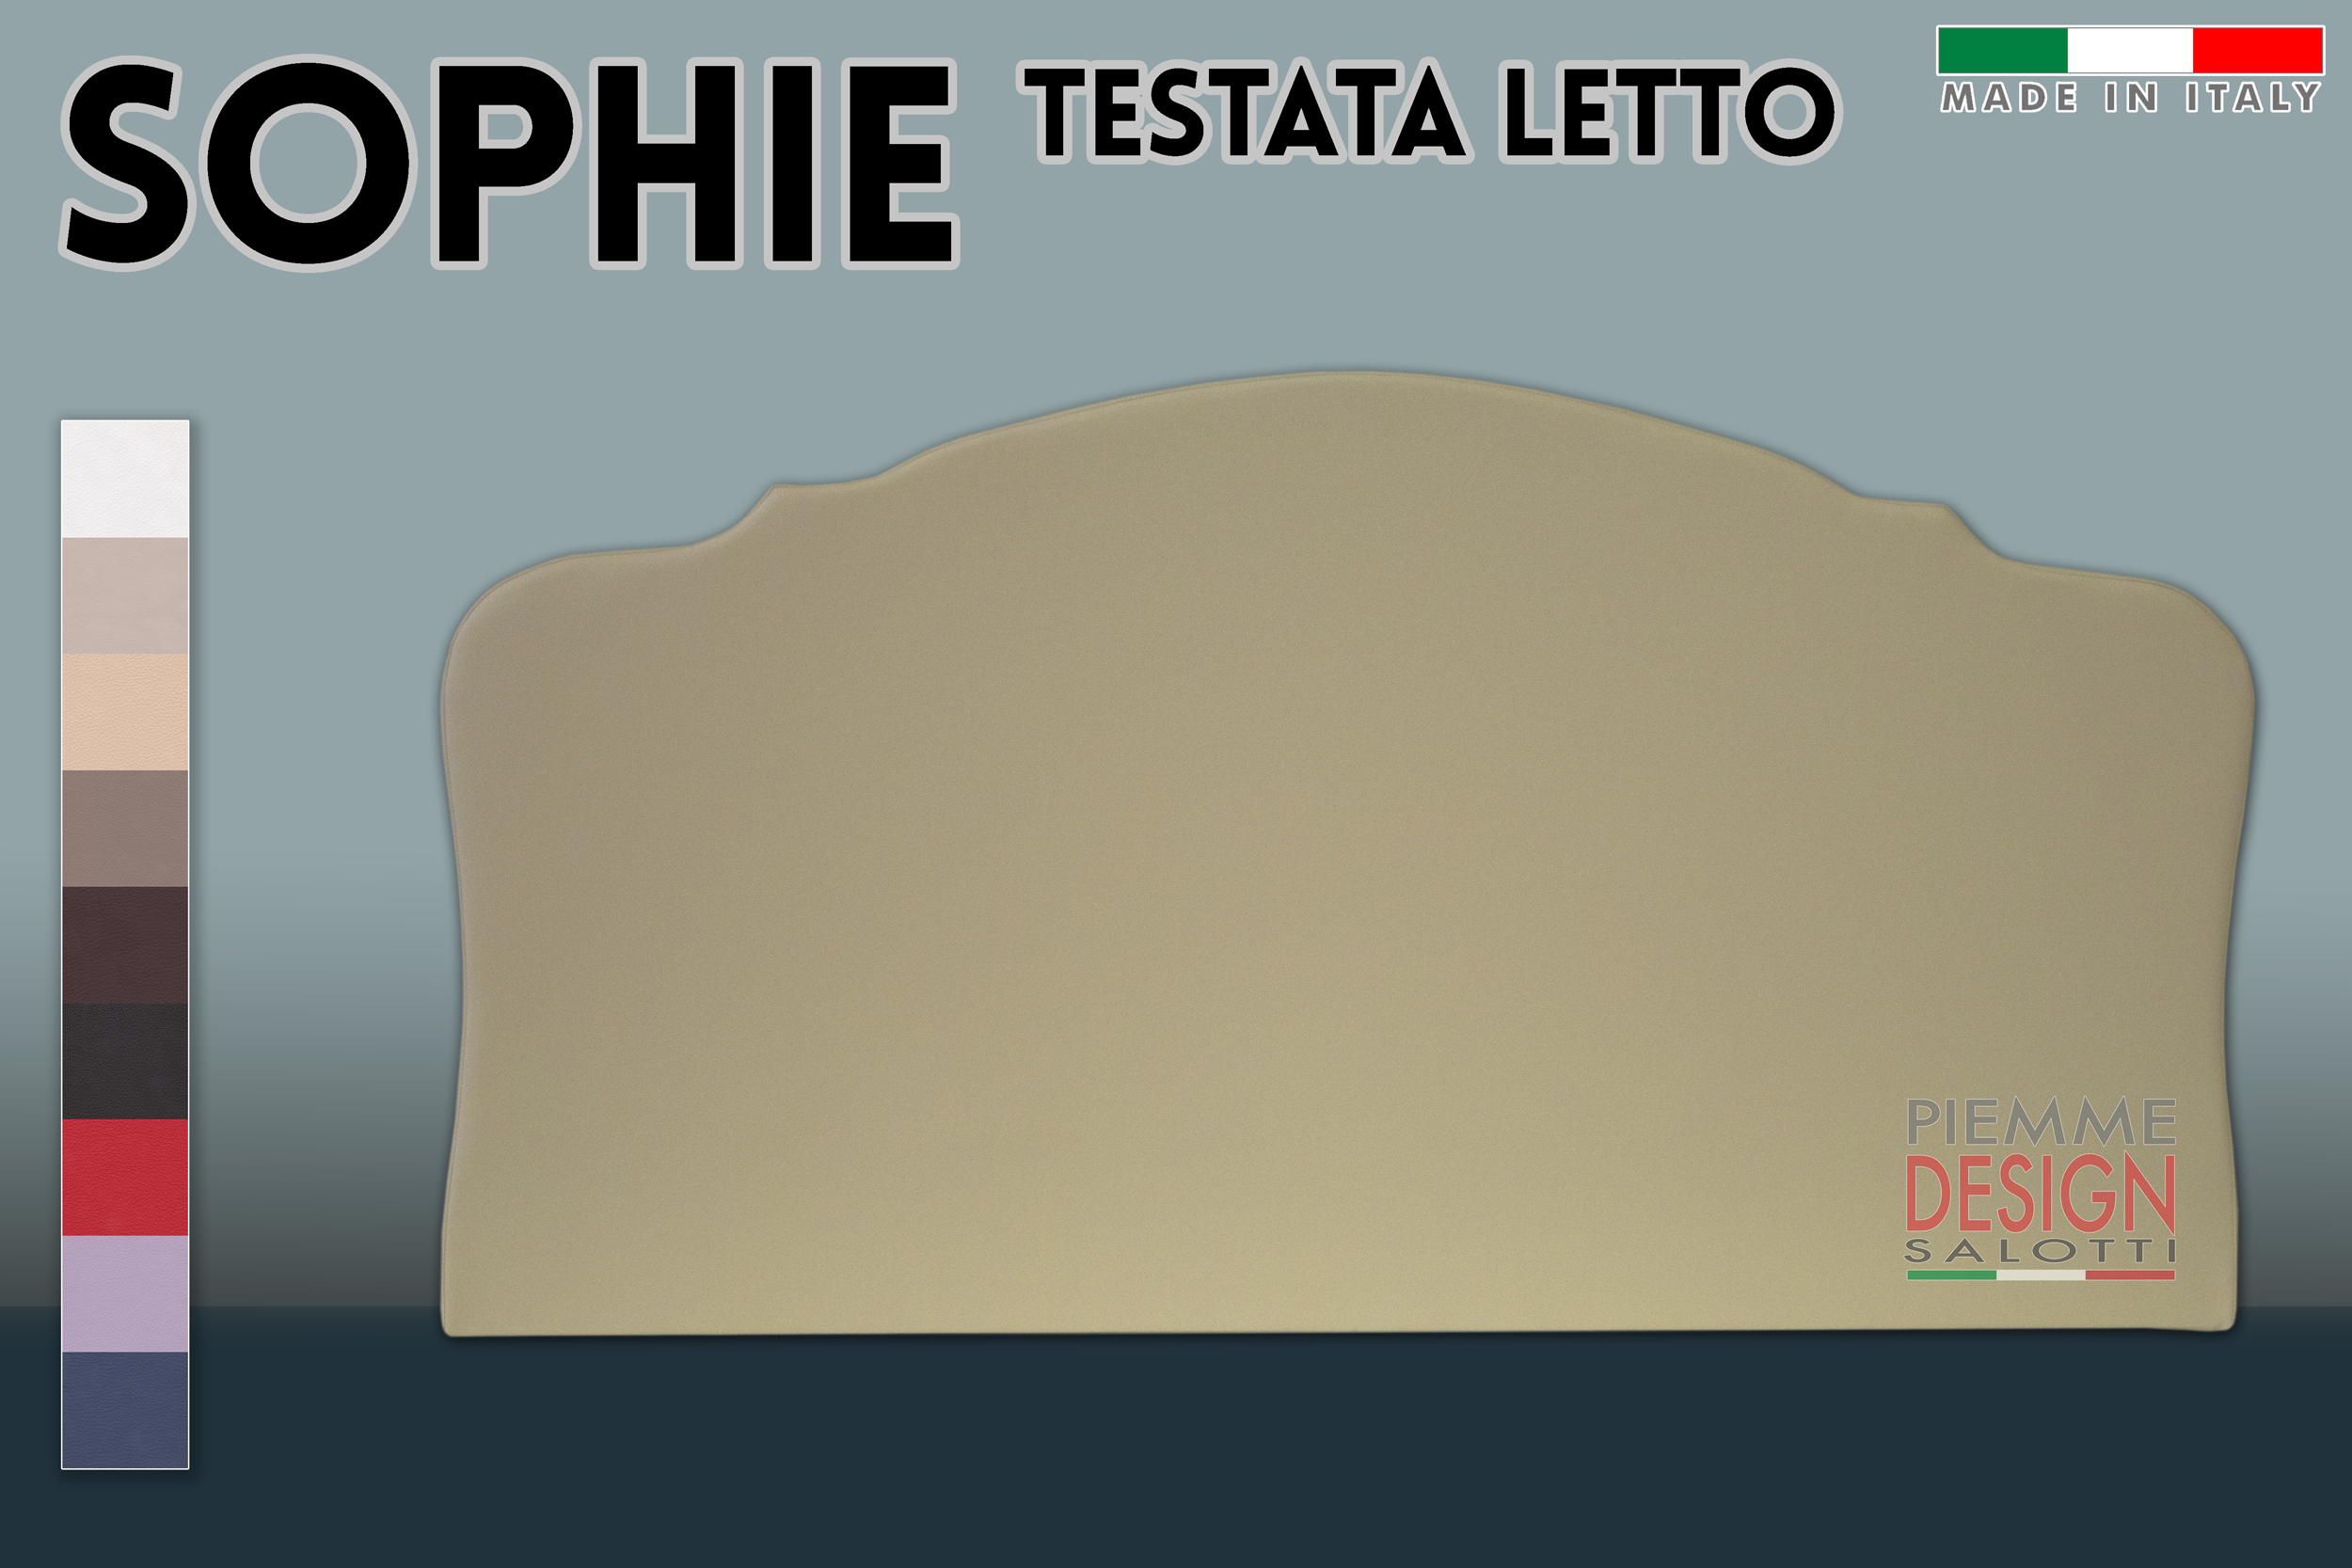 sophie_sito_testata_letto_rettang.png